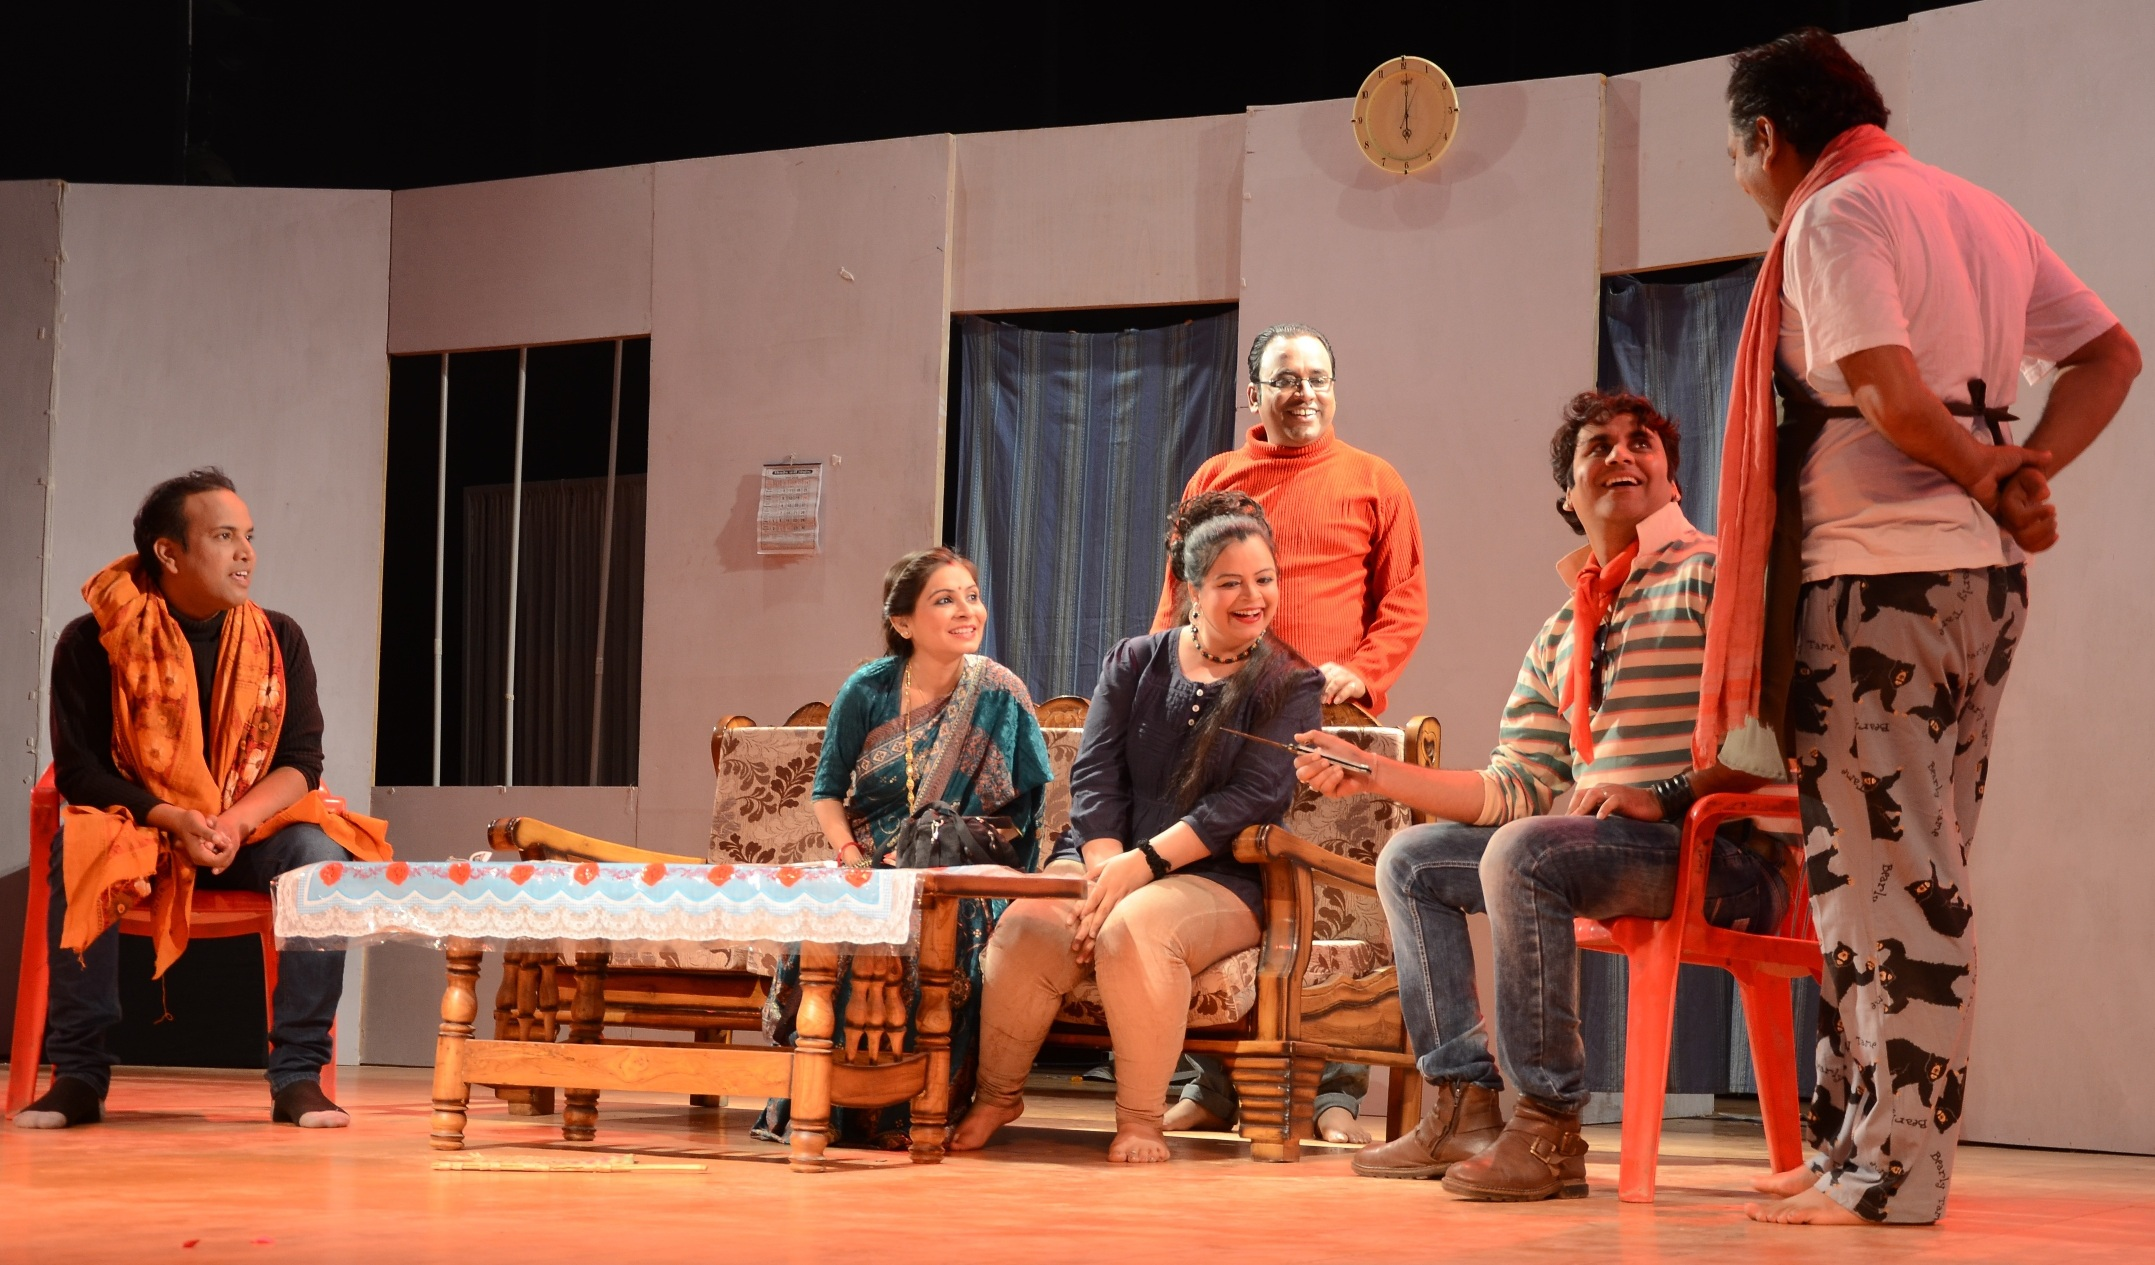 5 Days of Comedy Theatre at Jawahar Kala Kendra from 27 September